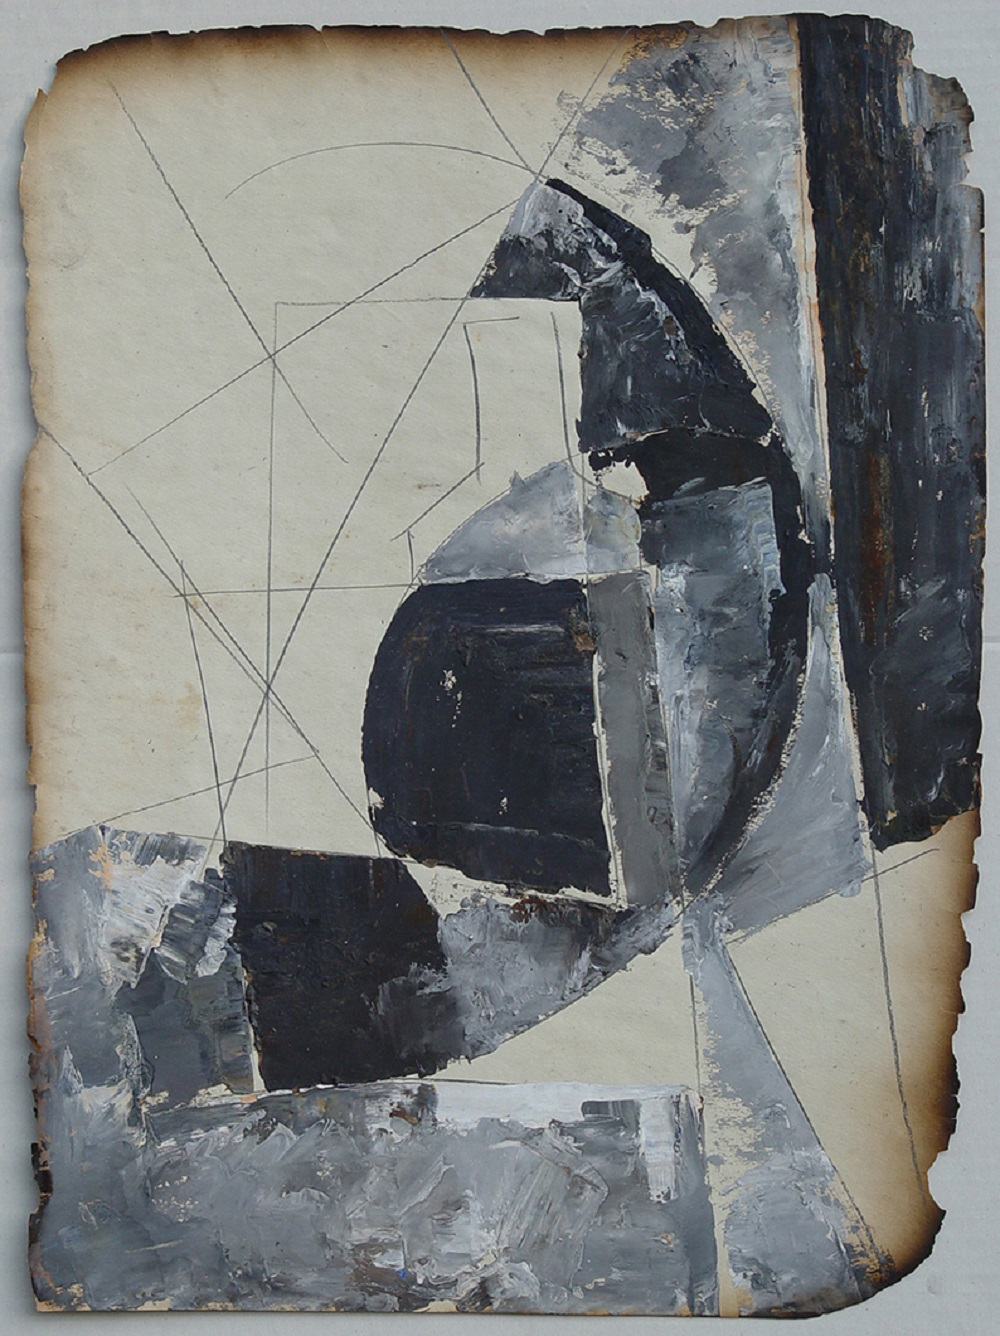 Anatoly Zverev (Russian, 1931-1986) (AR), untitled, gouache on paper, 56 x 42 cm